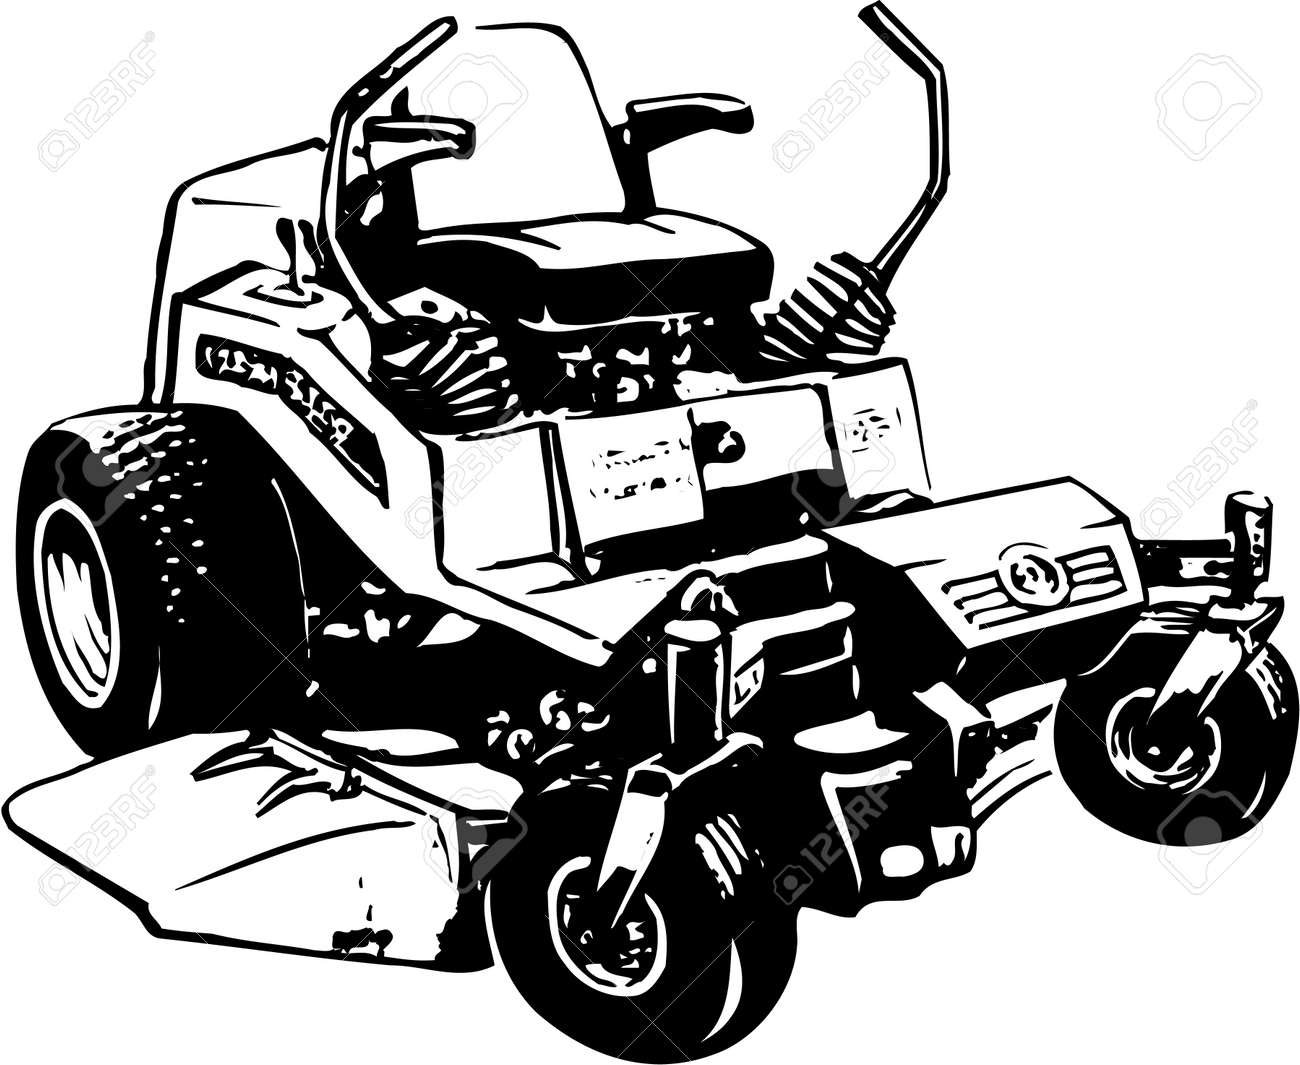 Lawn Mower Illustration On White Background Royalty Free Cliparts Vectors And Stock Illustration Image 87773449